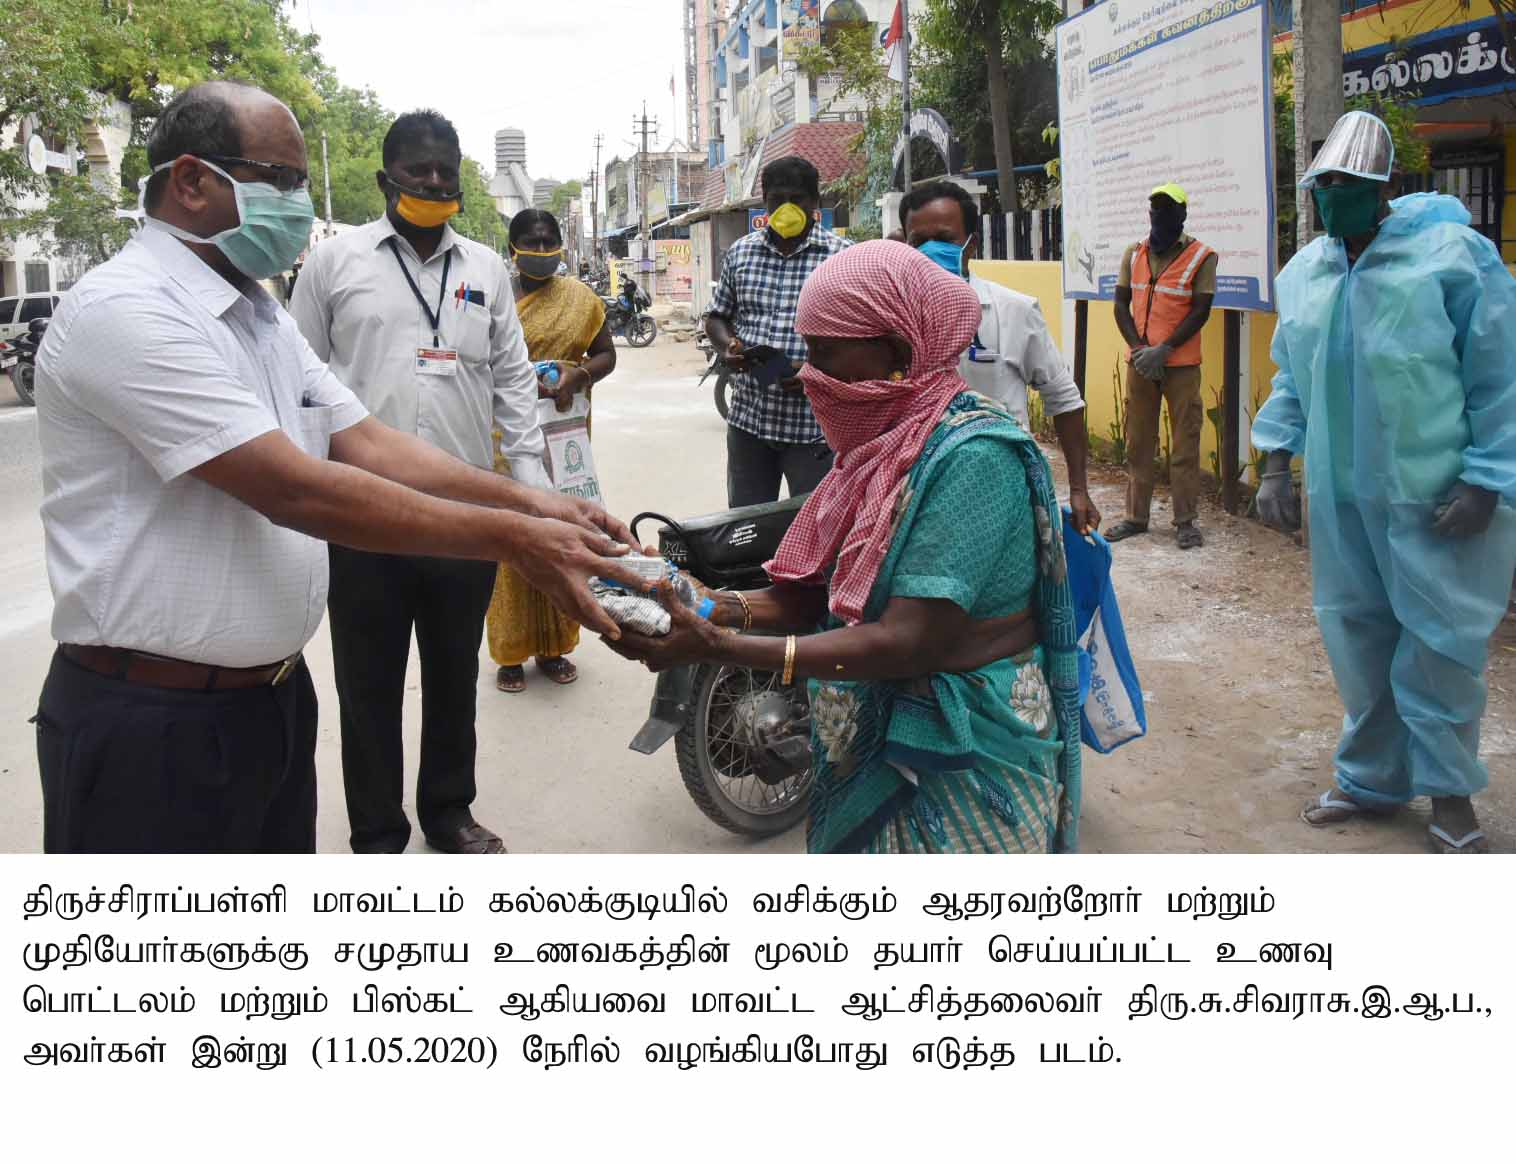 District Collector Distributed the Food prepared from Community Kitchens to the Destitute Peoples